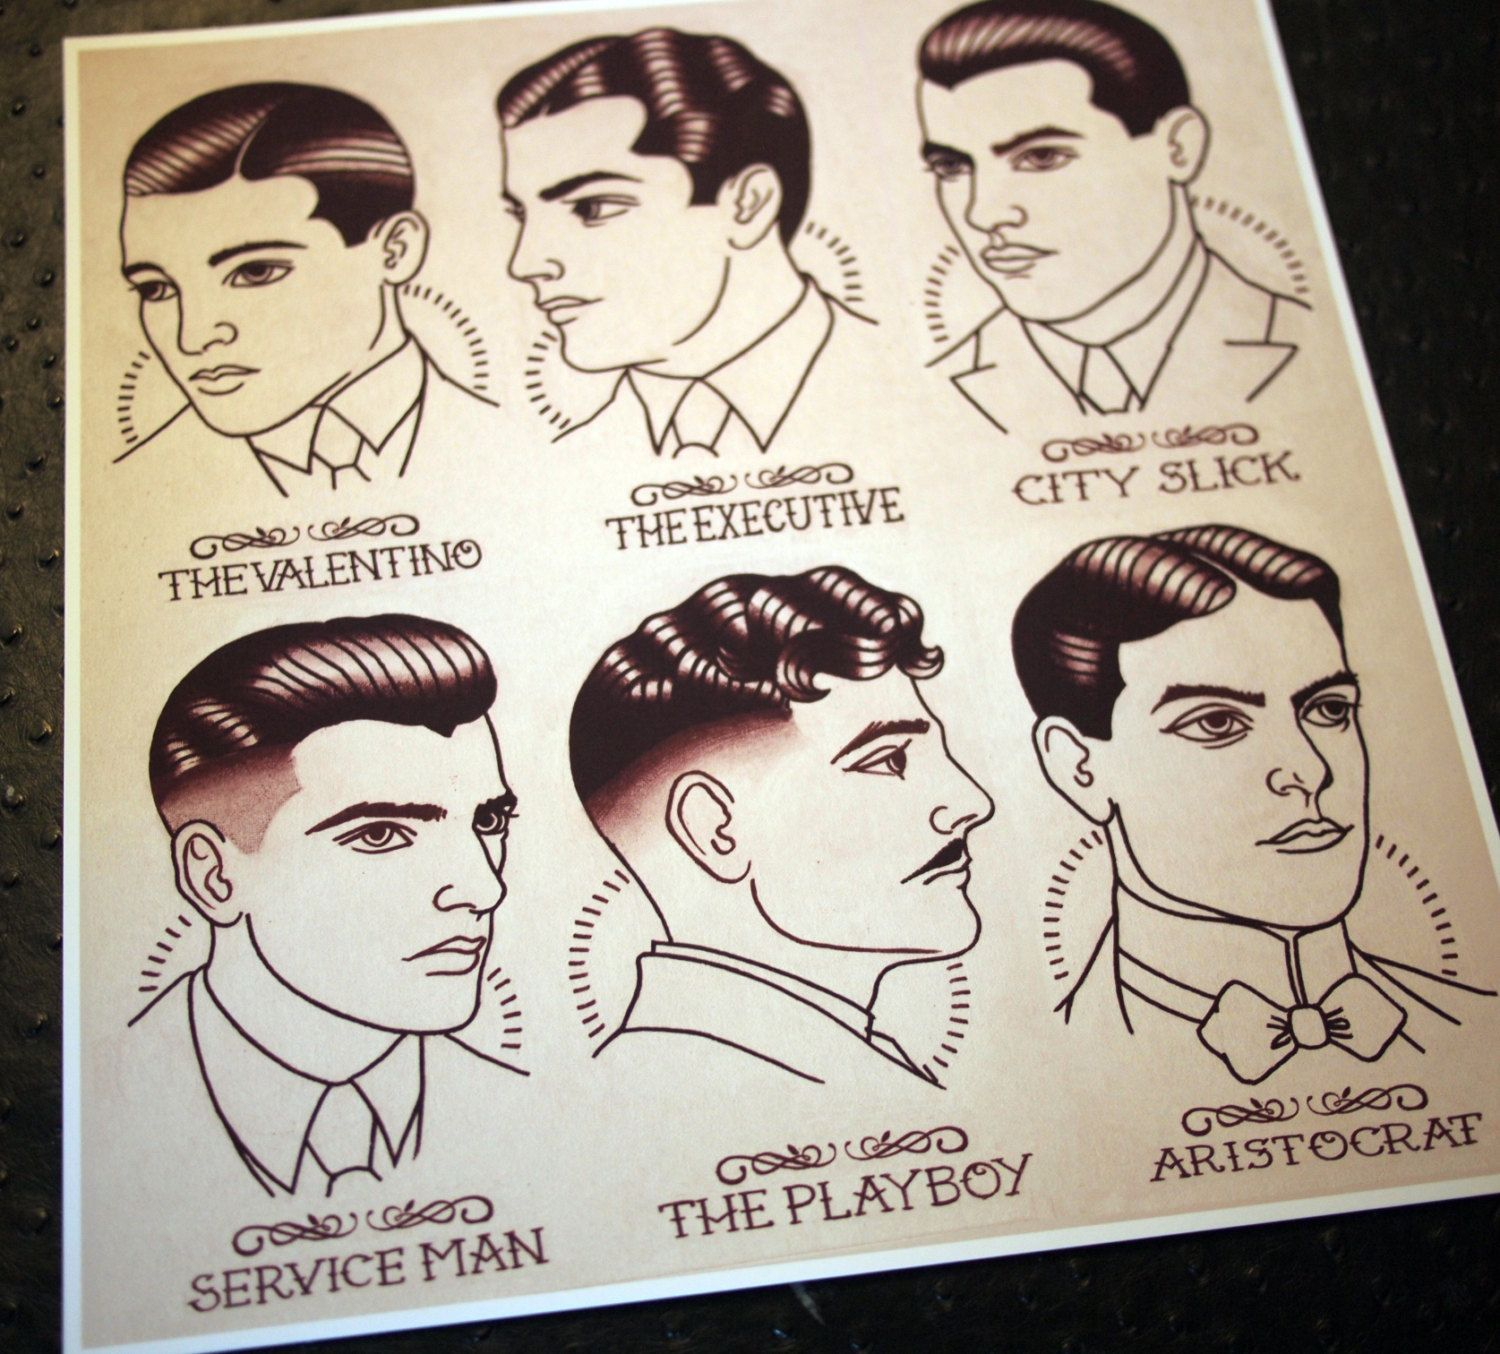 1920 S Gentlemen S Hairstyle Guide By Quyen Dinh Menshairstyles 1920s Mens Hair Hair Guide 1920s Hair